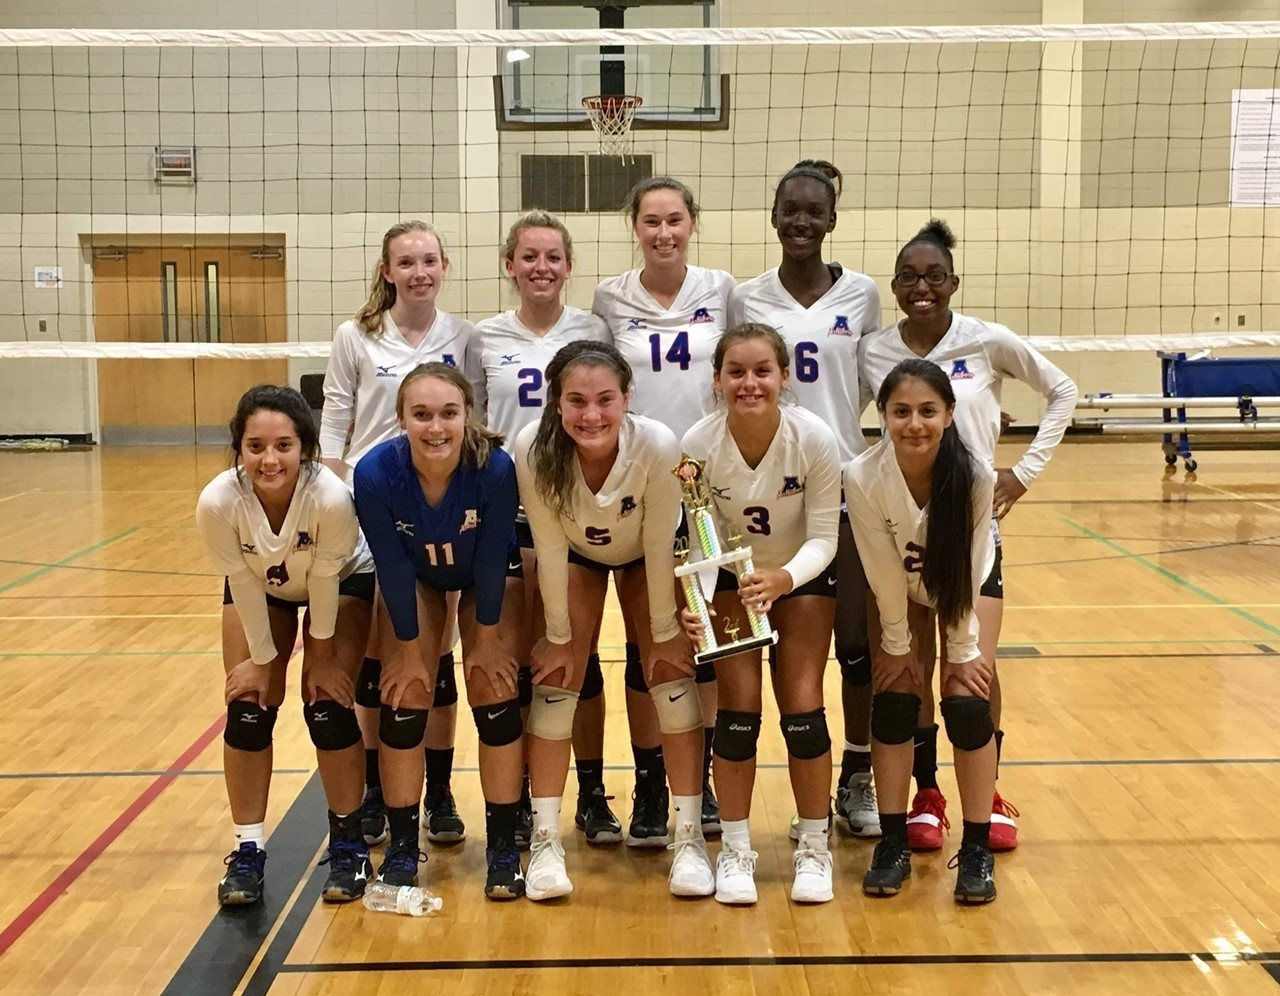 Girls Volleyball wins 2nd Place in the Tournament!